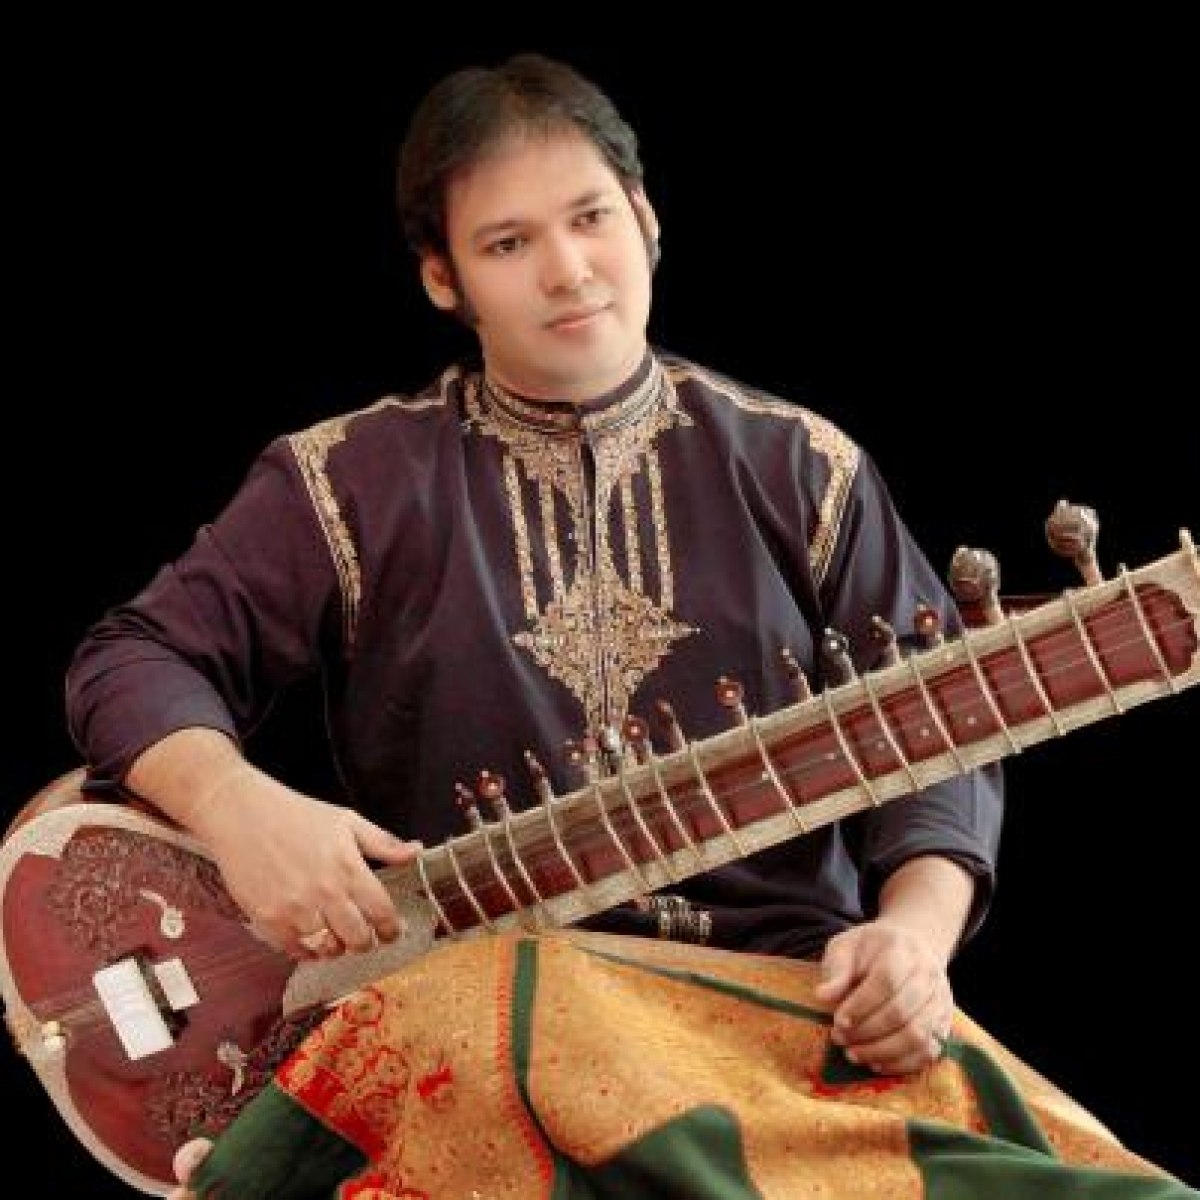 A week after father Pandit Devbrata Chaudhuri, sitar player Prateek Chaudhuri dies of COVID-19